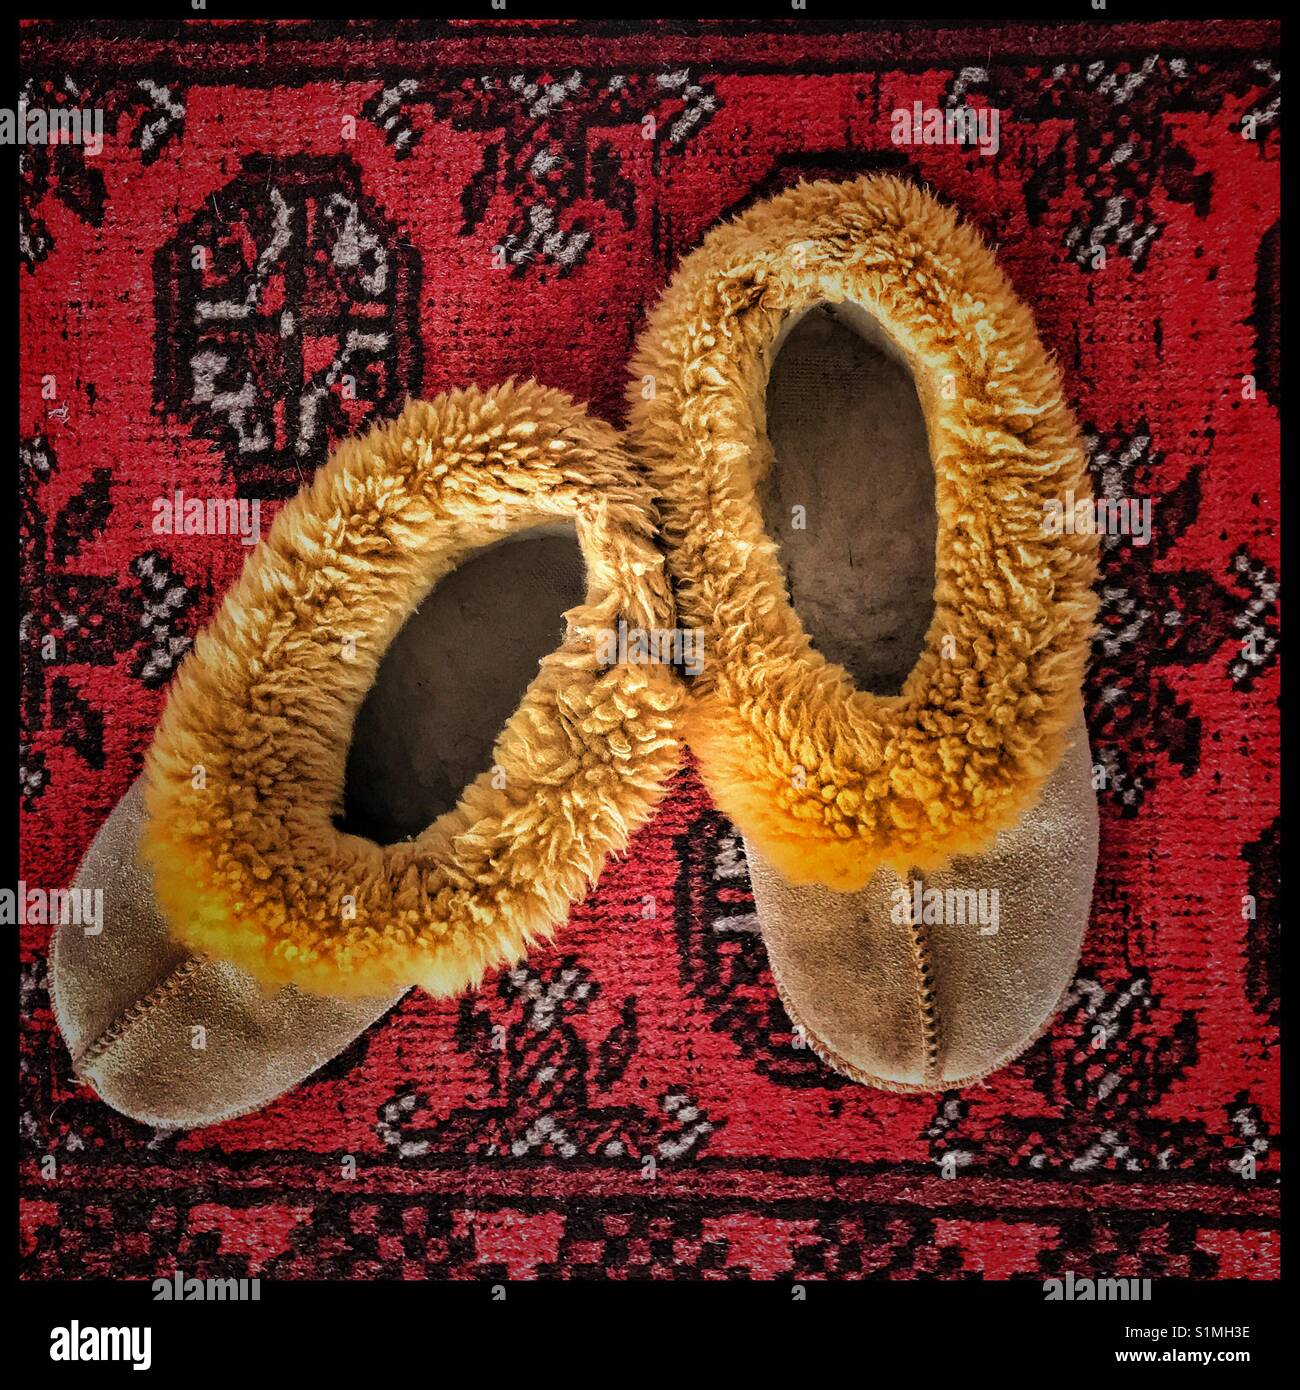 Wool slippers on carpet. - Stock Image